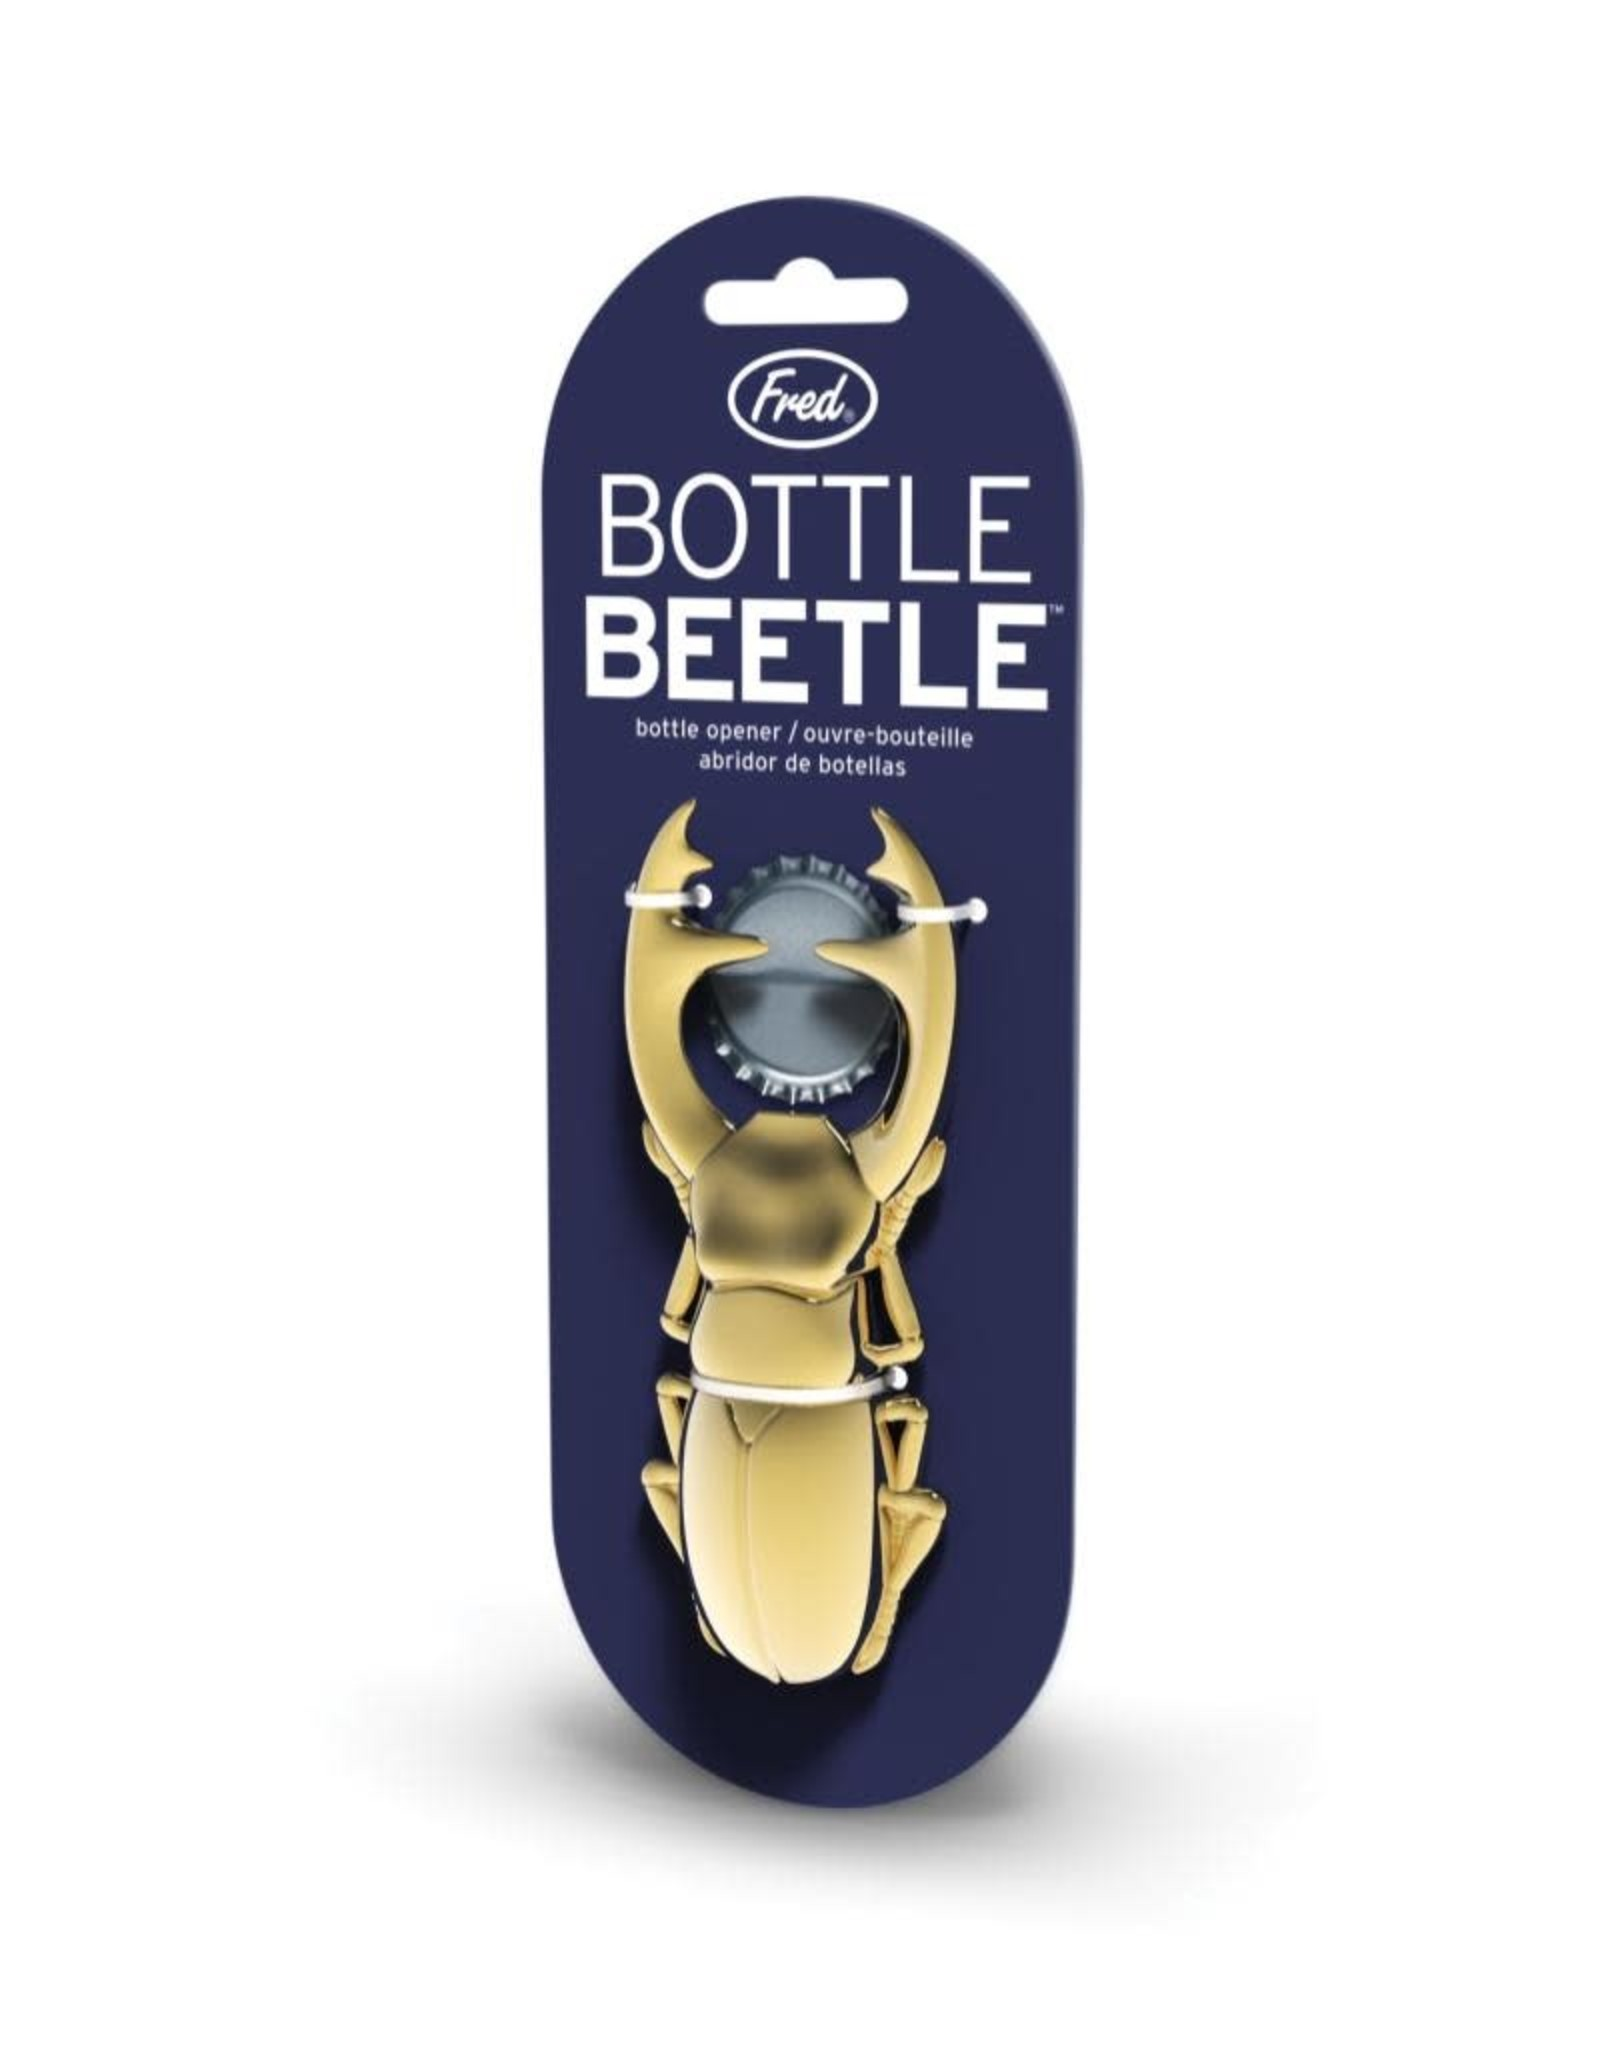 Fred Bottle Beetle Bottle Opener